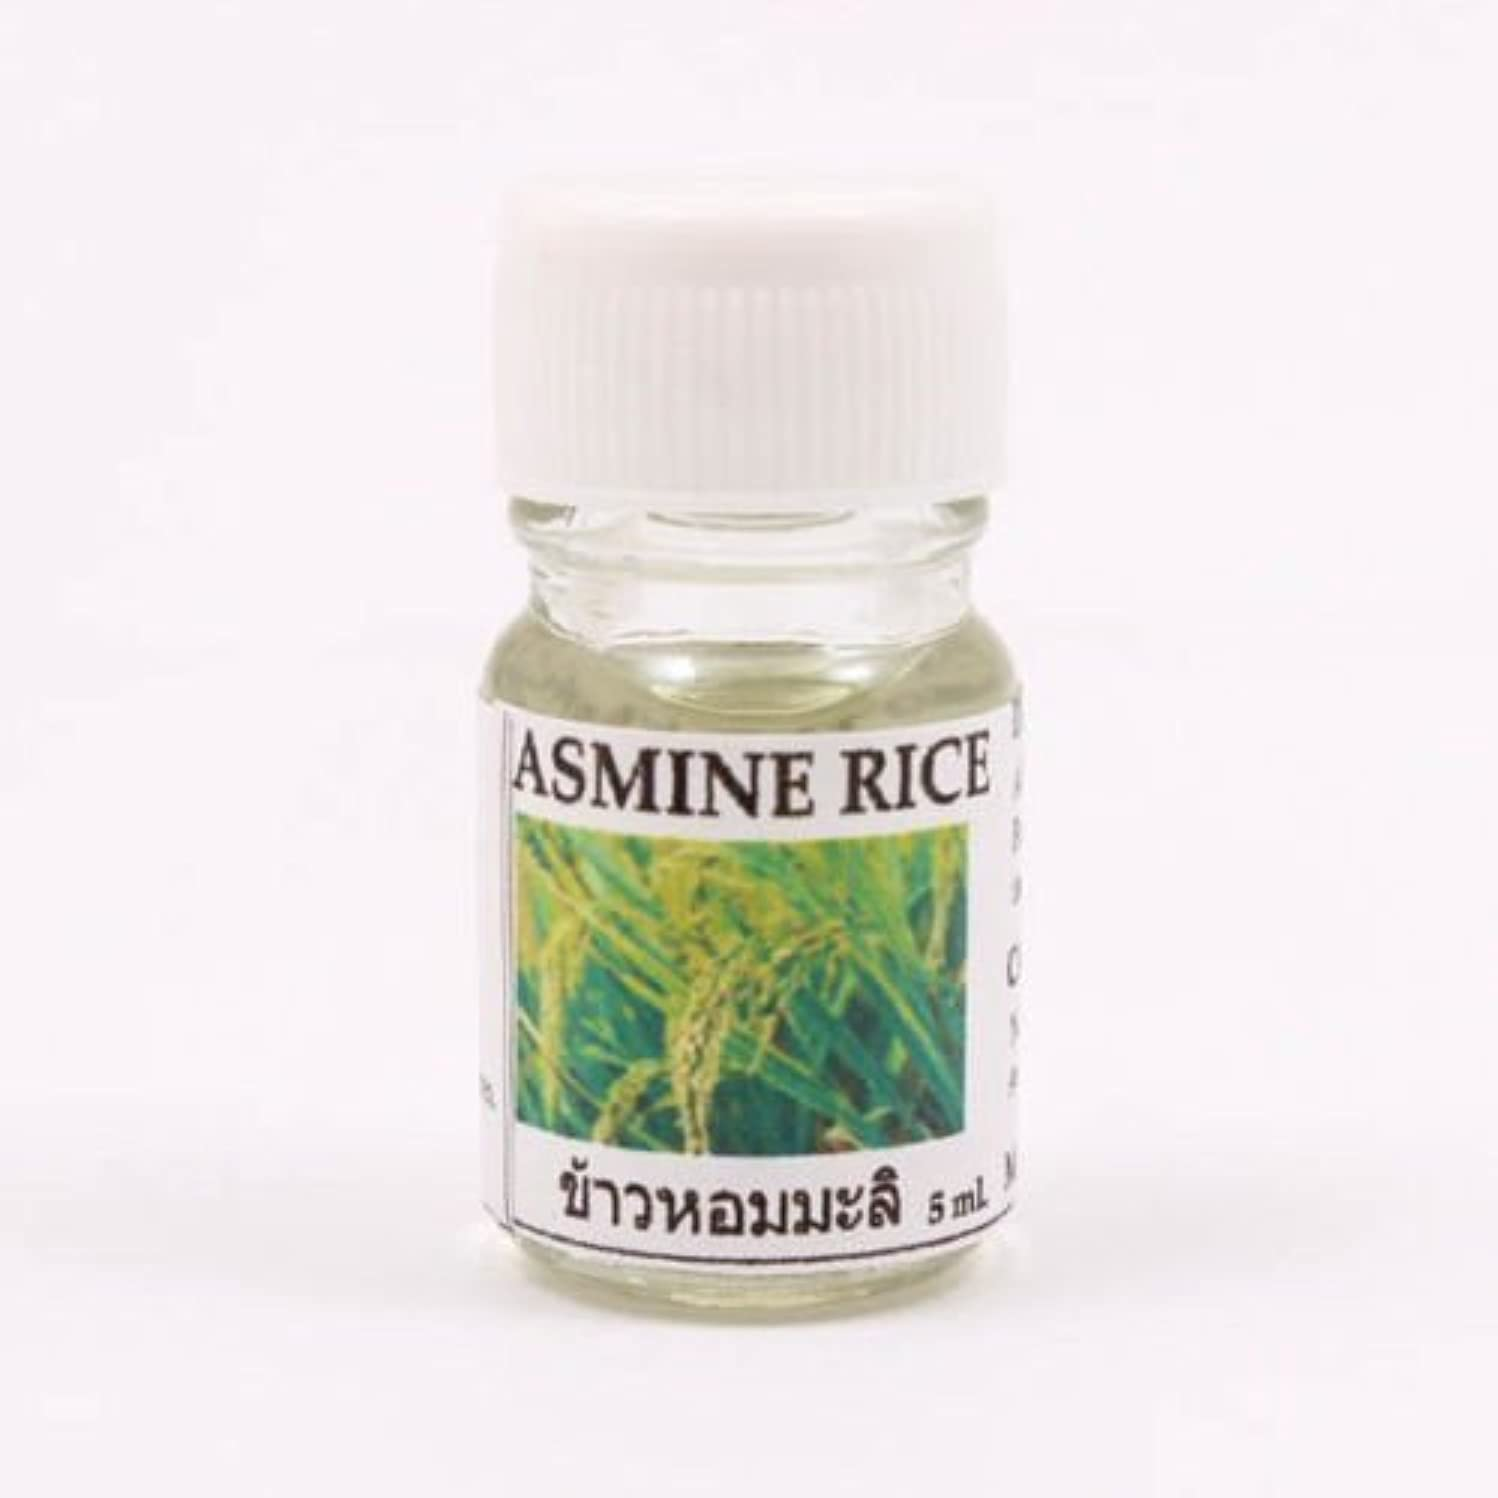 6X Jasmine Rice Aroma Fragrance Essential Oil 5ML. (cc) Diffuser Burner